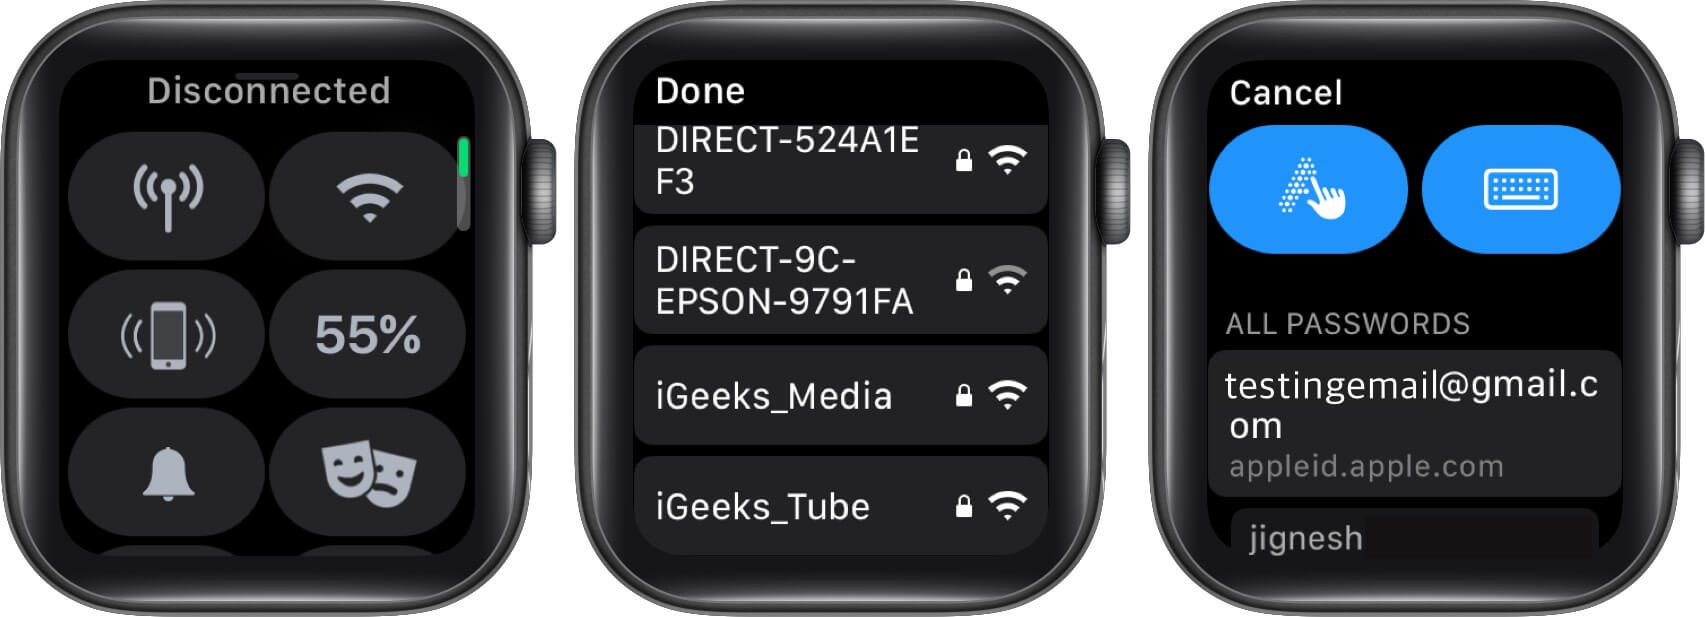 Turn Off Wi-Fi and Reconnect with Same Wi-Fi on Apple Watch